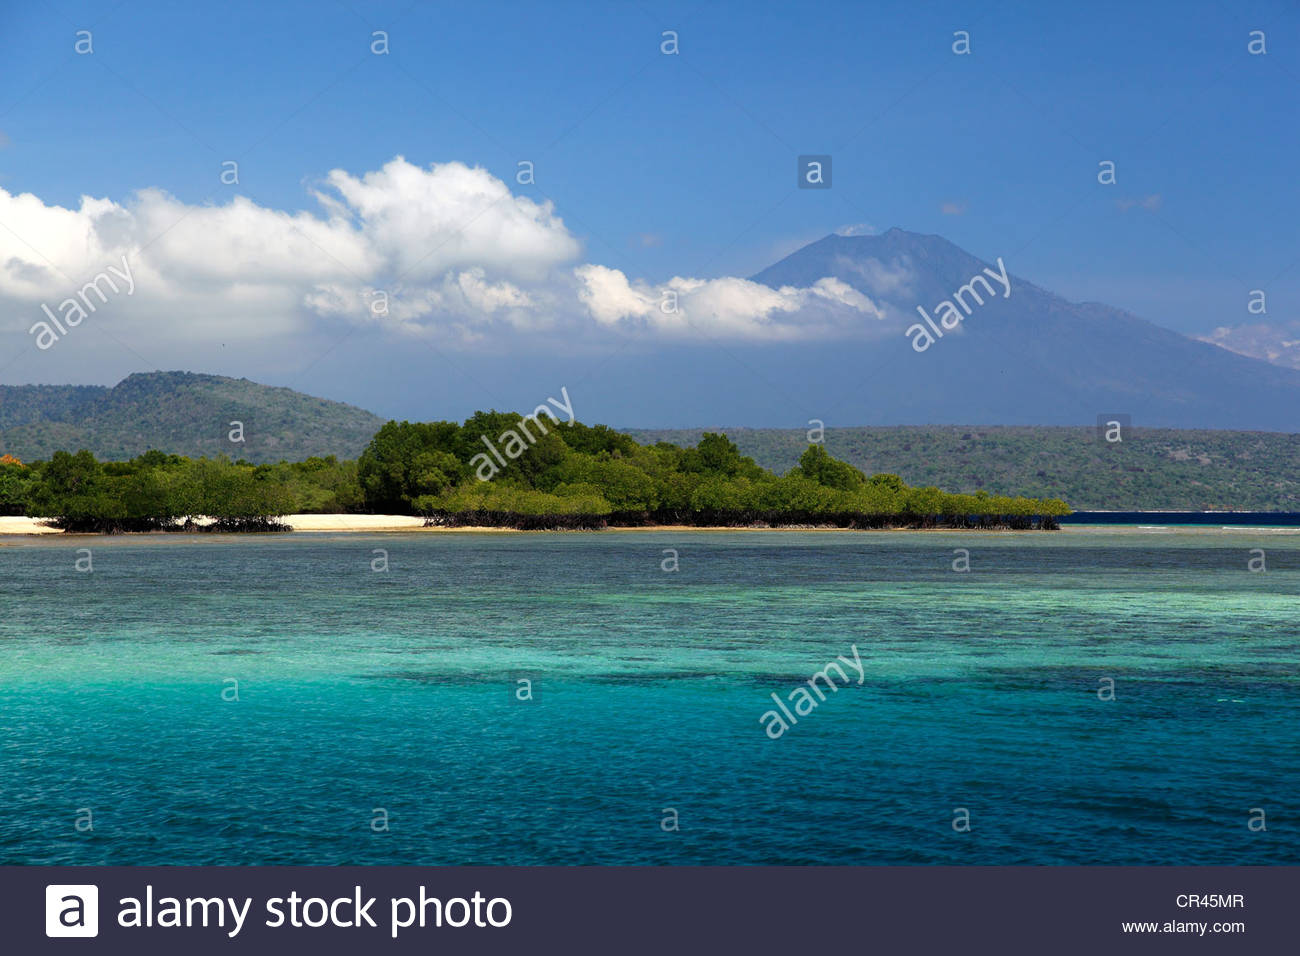 North coast of Bali facing Java, volcanoes, Indonesia, Southeast Asia - Stock Image